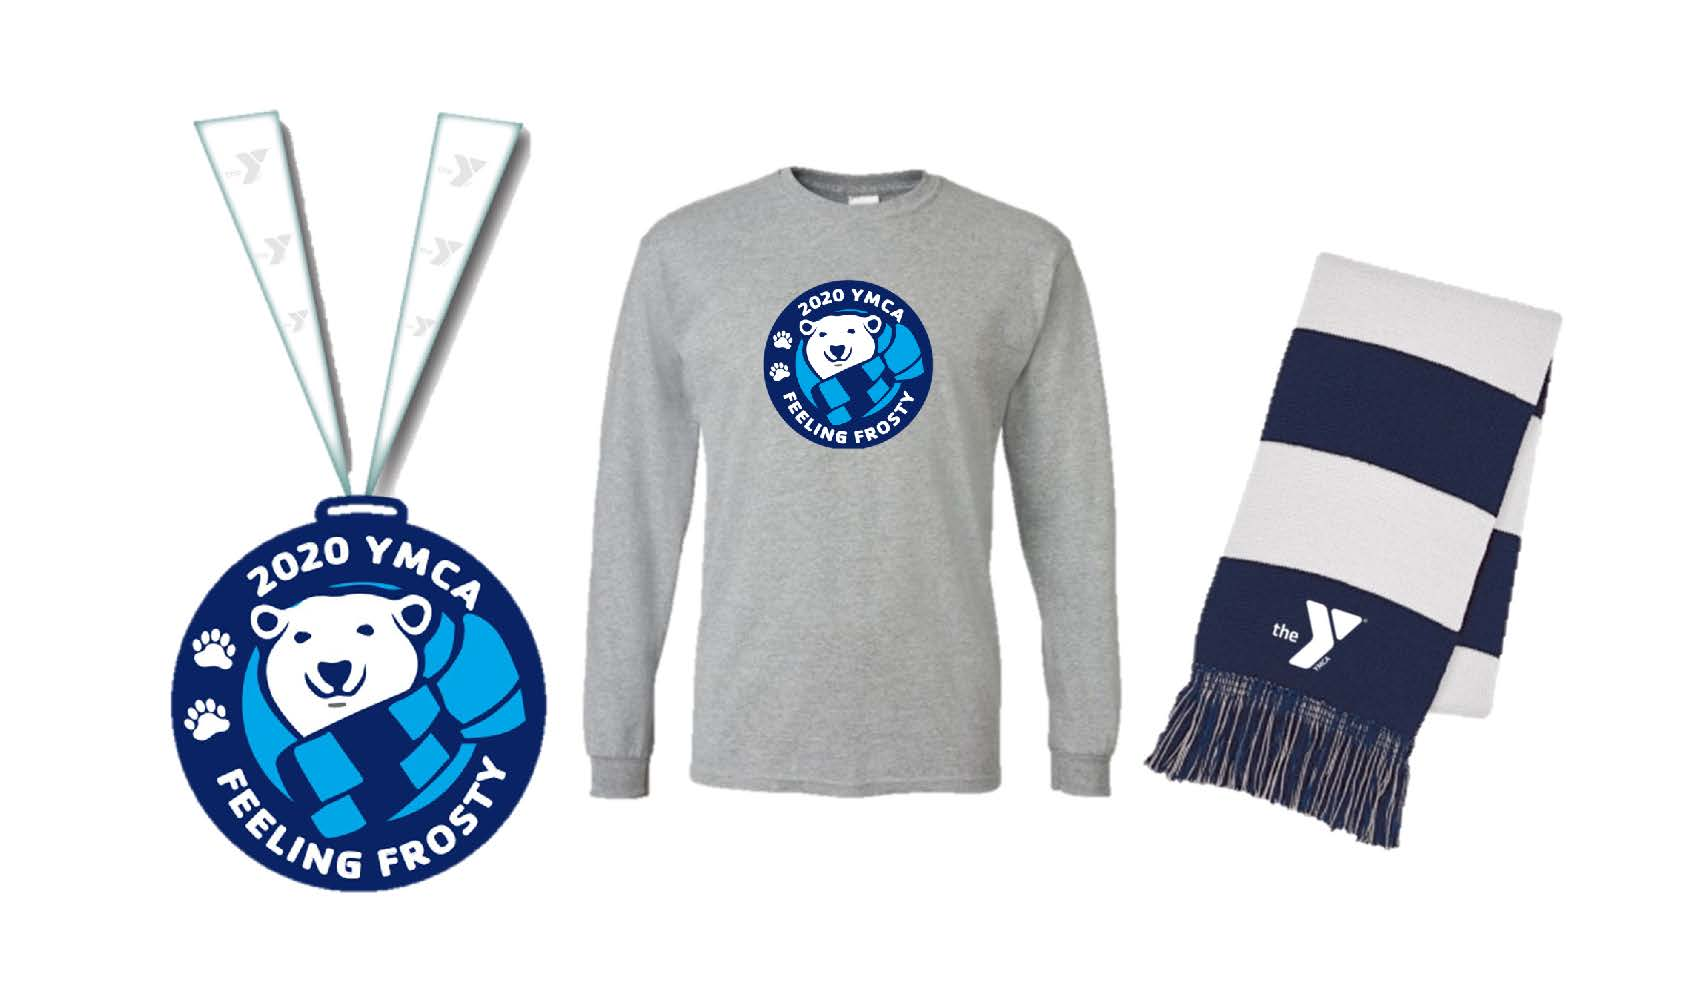 2020 Feeling Frosty Medal, Shirt, and Scarf